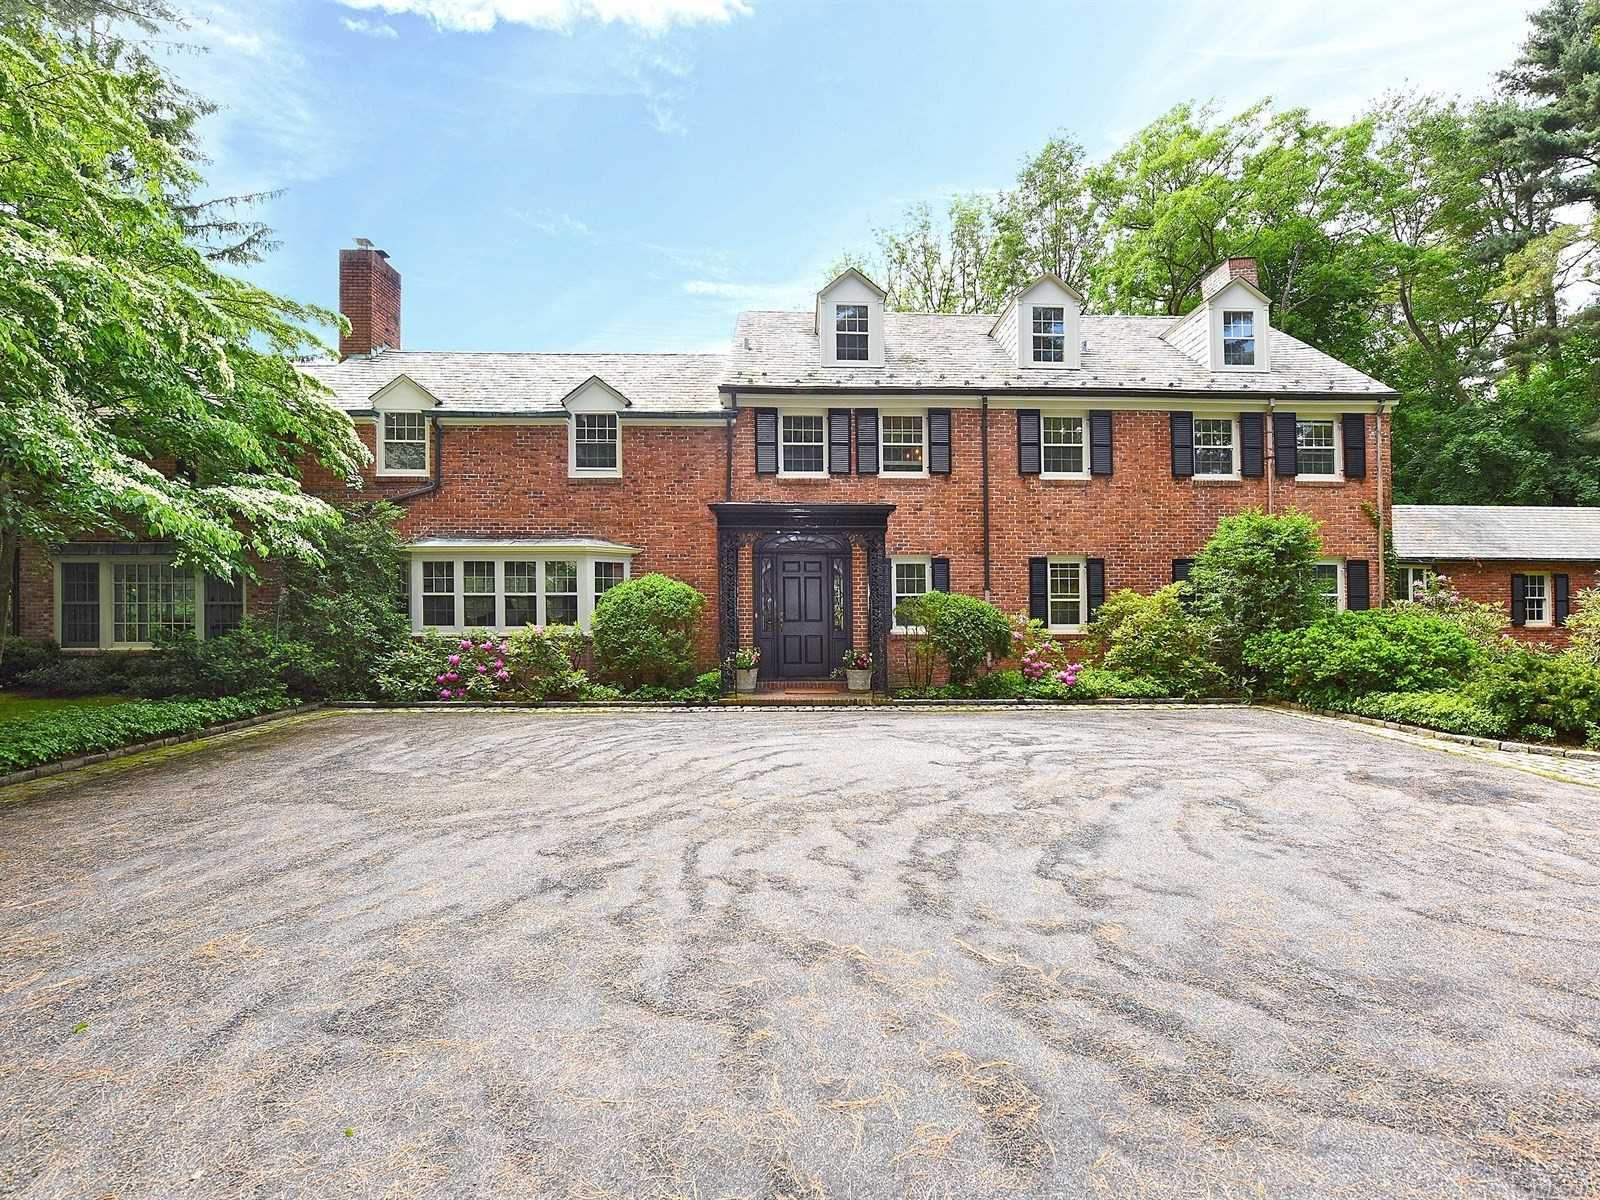 This Elegant Brick Colonial With Slate Roof Is Tucked Away Down A Private Road In An Estate Setting On Over 2 Serene Acres. A Perfect Retreat With Solarium Room That Opens To The Deck Overlooking The In-Ground Gunite Gas Heated Pool And Brick Pool House. Stunning Great Room With Fireplace, Living Room, Office And Den Opens To The Backyard Capturing Bucolic Woodland View.